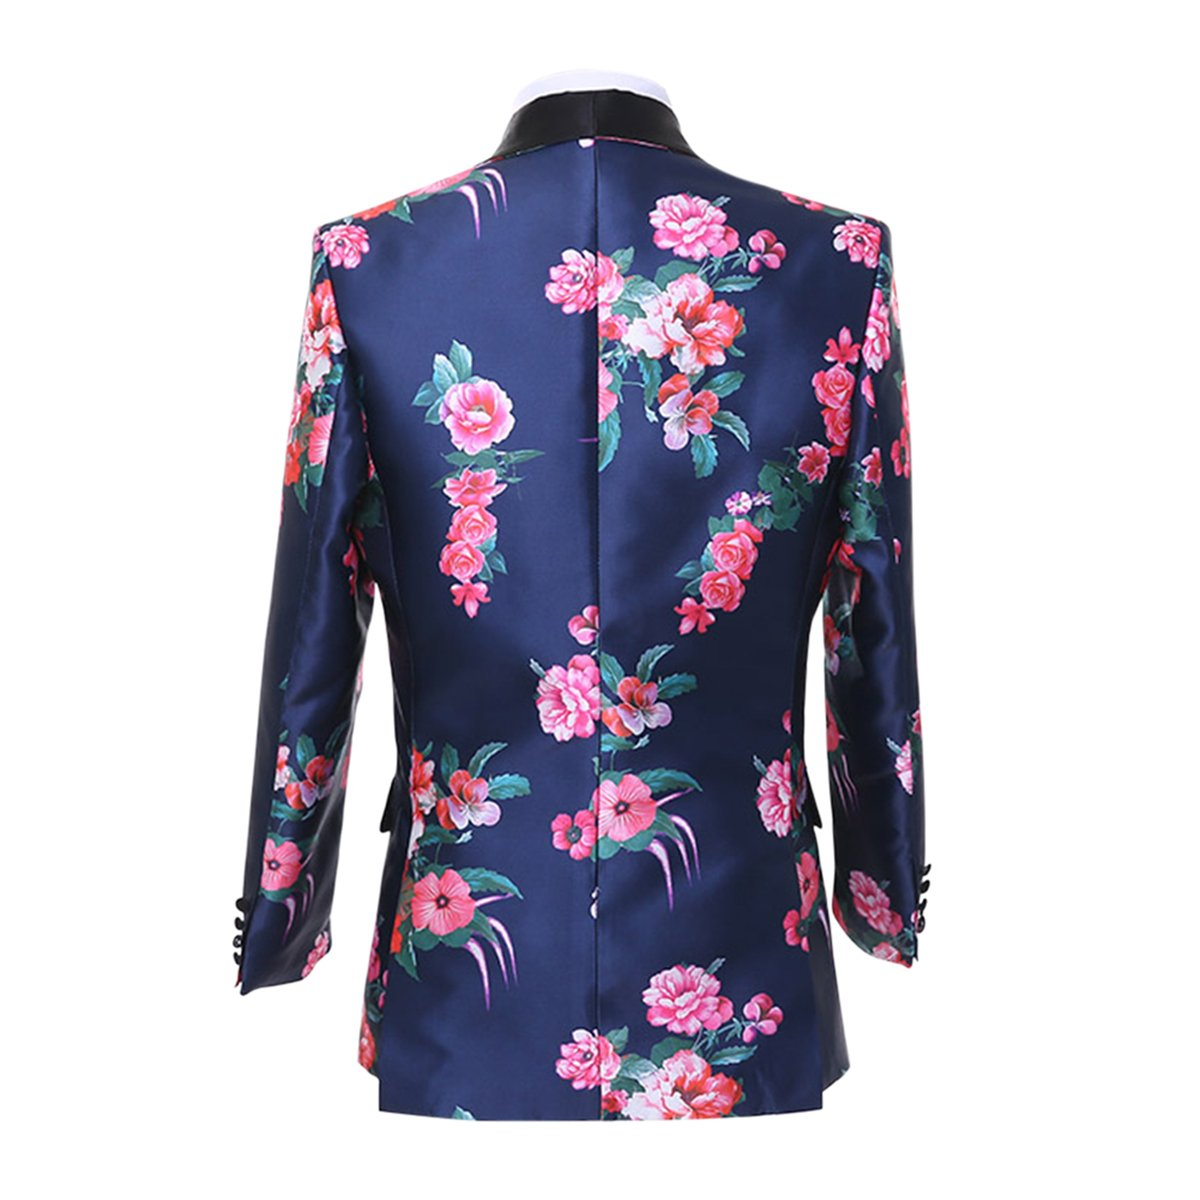 Cloudstyle Mens Suit Fit 2-Piece Single Breasted Blazer Floral Dress Tuxedo Party Formal Jacket&Trousers by Cloudstyle (Image #5)